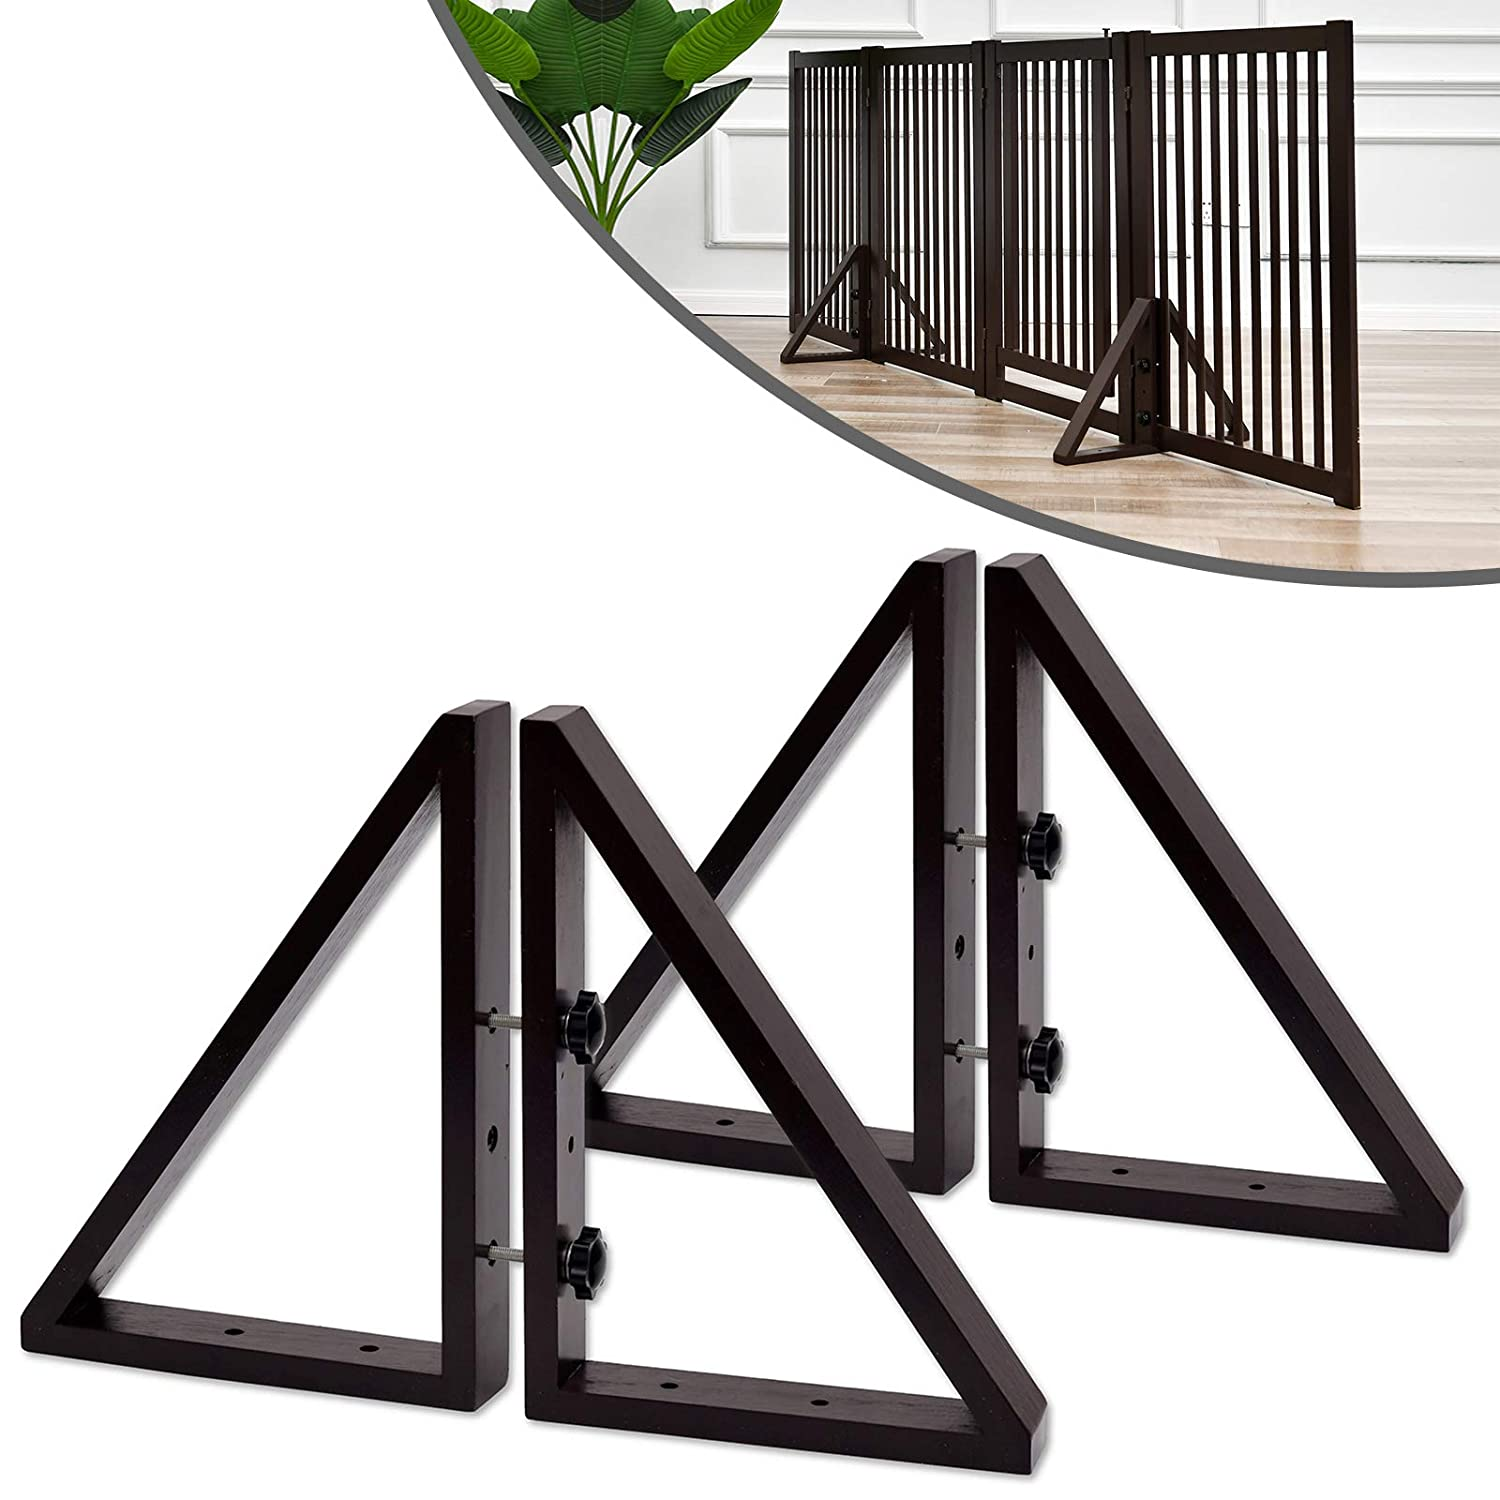 WELLAND Triangle Support Feet Set of 2 for 360 Degree Configurable Gate Collection, Solid Pine Wood, Easy to Install, 2 Pairs of Safety Fence Feet for Freestanding Pet Gates, Espresso